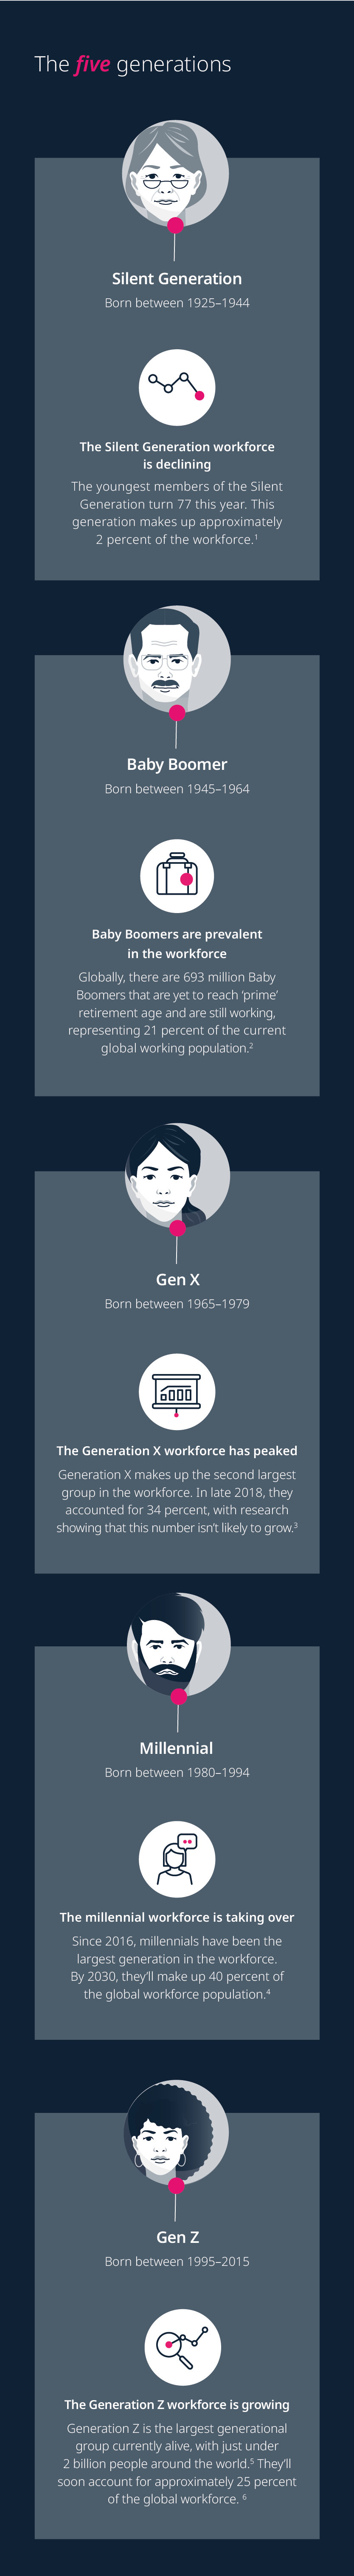 The five generations in the workforce